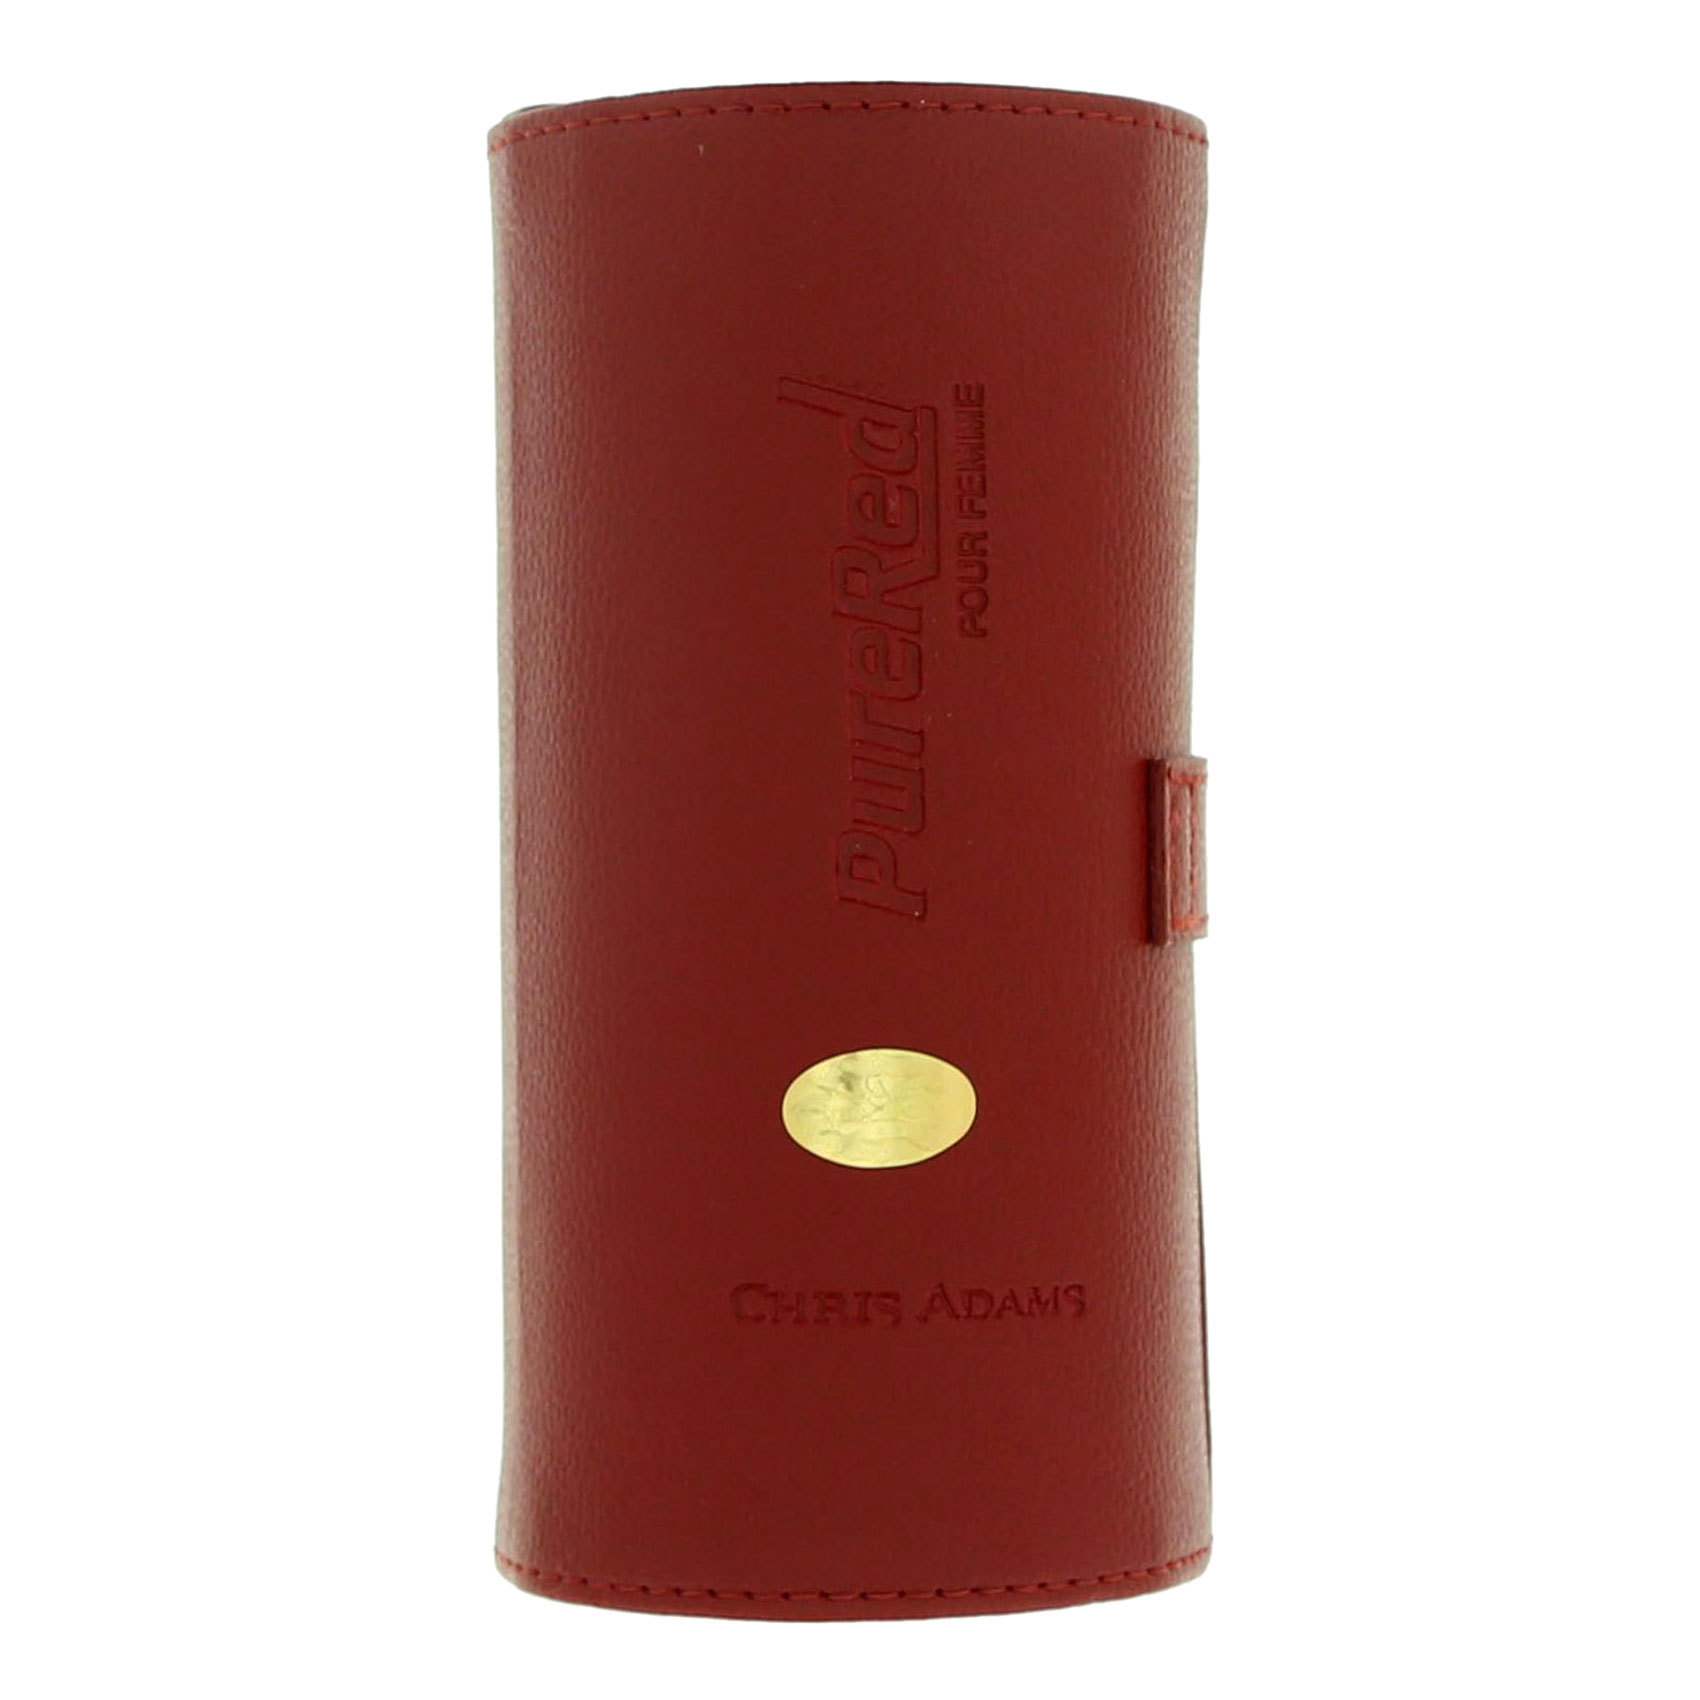 CHRIS ADAMS PURE RED (W)EDT100 ML